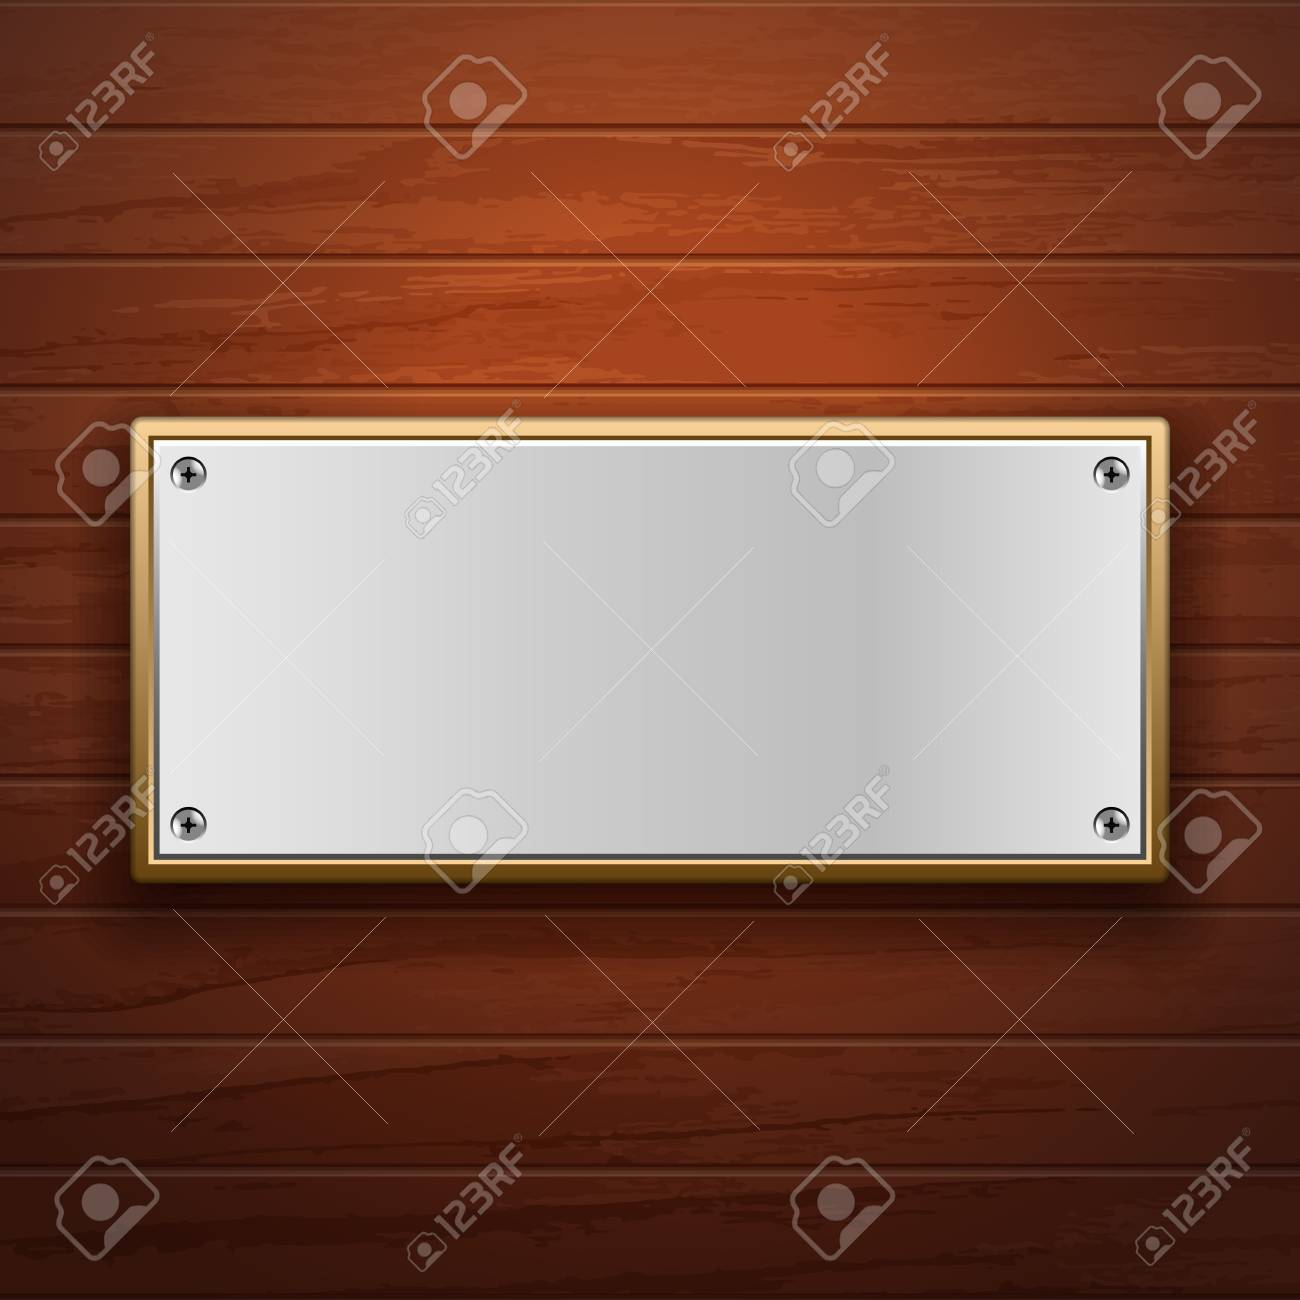 Metal plate on wooden surface - 21433683